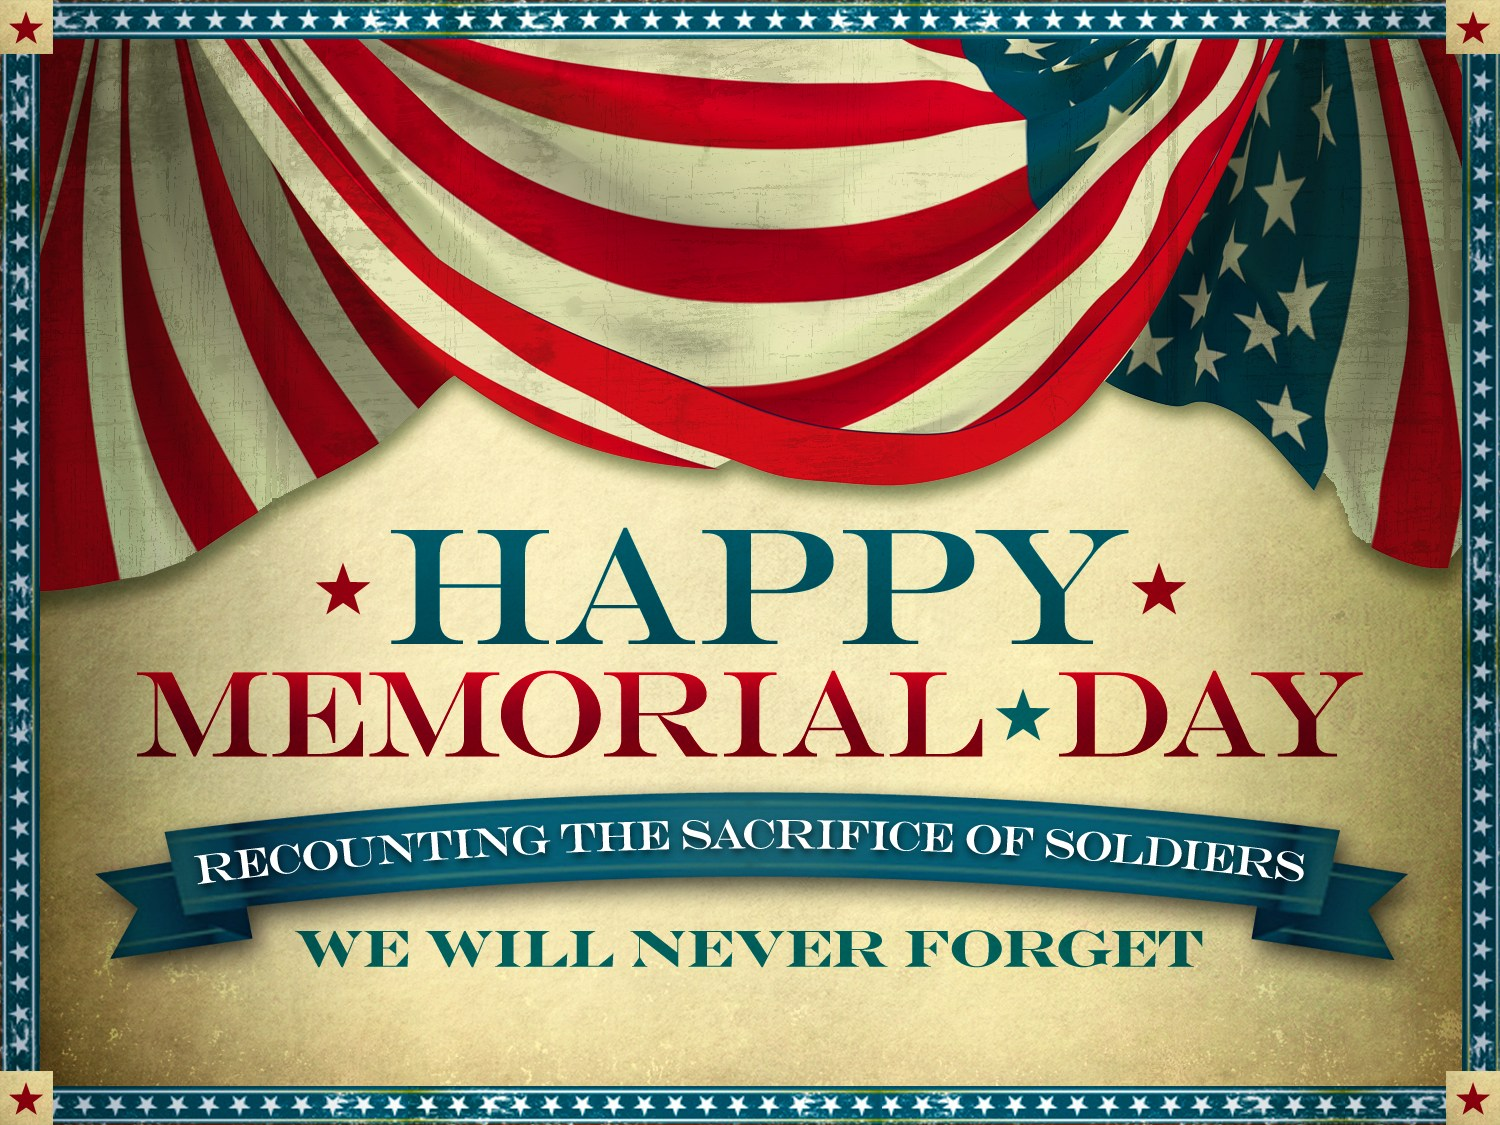 memorial-day-greetings-4